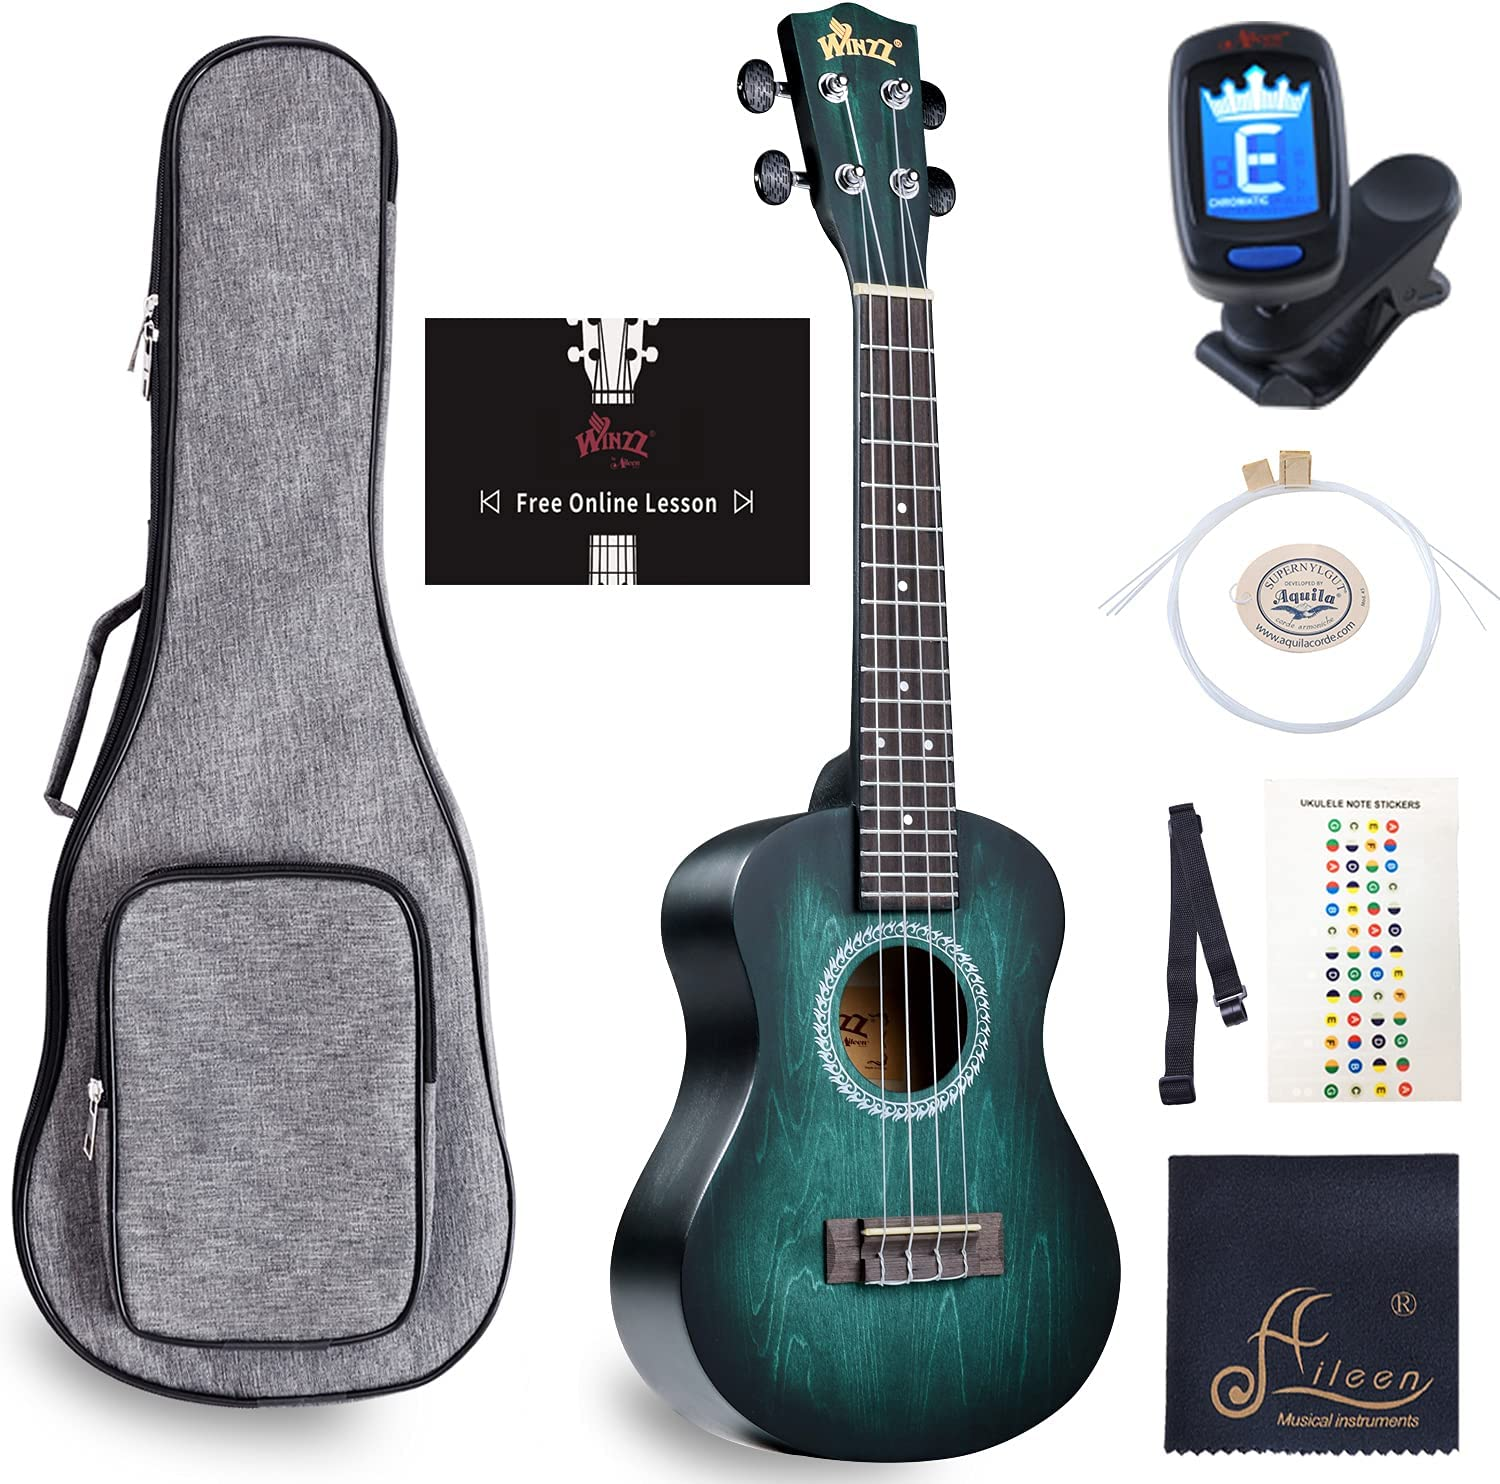 WINZZ Concert Ukulele Vintage Hawaiian Uke with Online Lessons, Bag, Tuner, Strap, Extra Strings, Fingerboard Sticker, 23 Inches, Dark Cyan